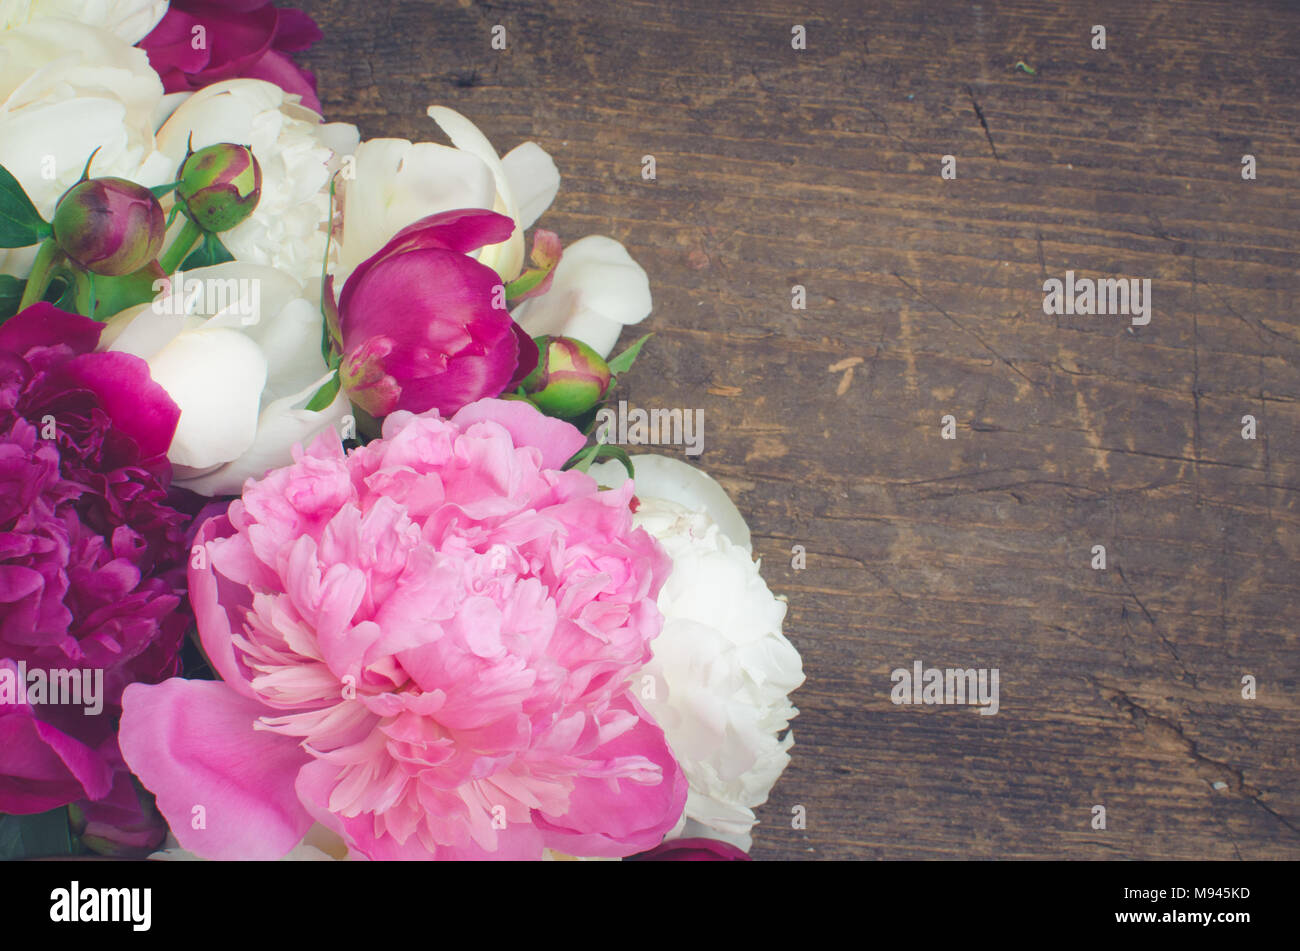 Peony Background Fuchsia Pink And White Peonies On Wooden Table